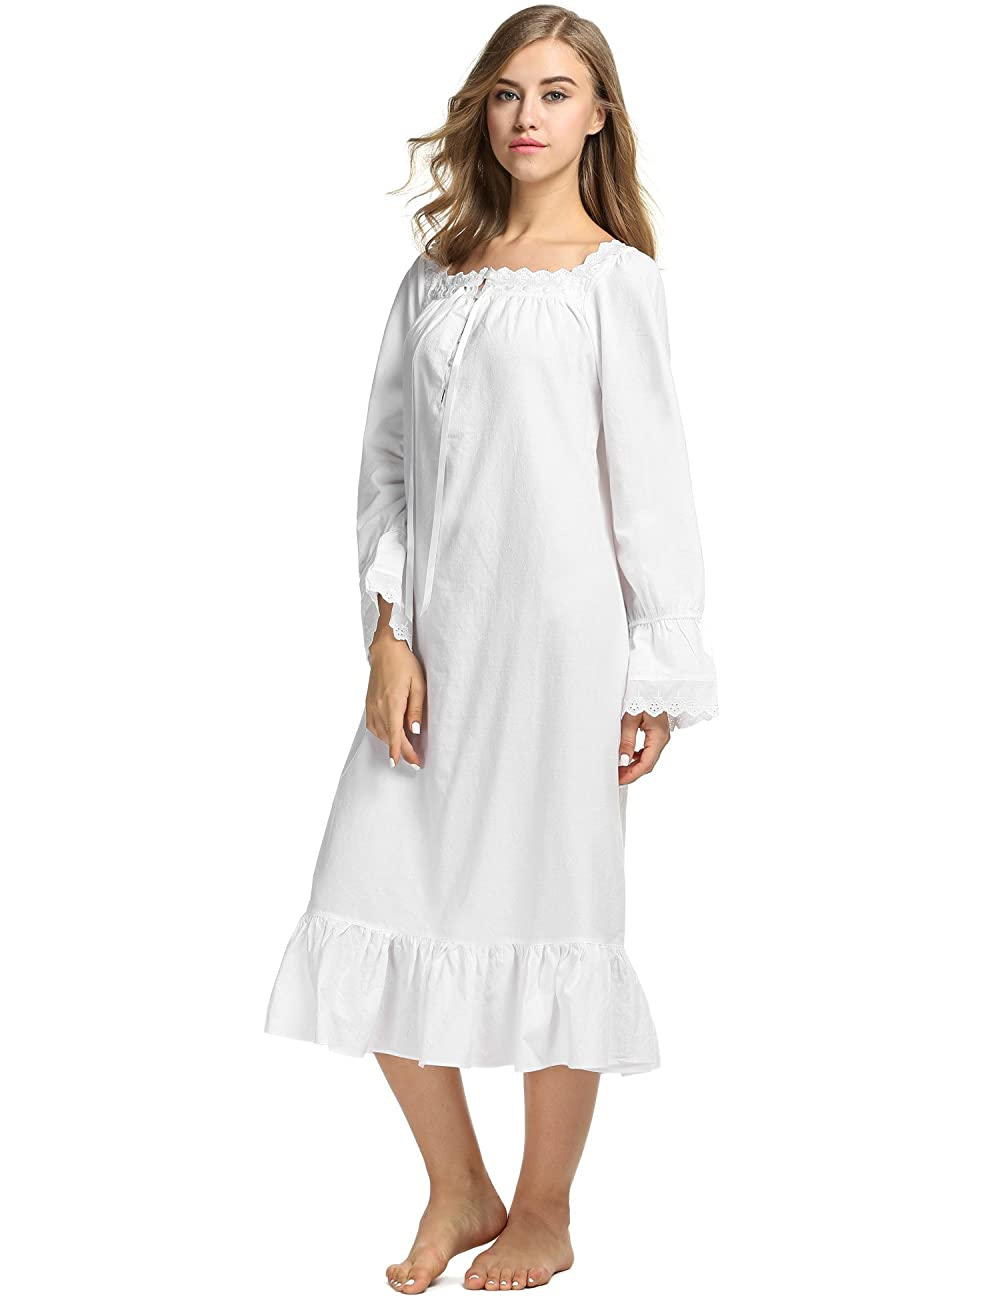 Avidlove Womens Cotton Victorian Nightgowns Romantic Long Bell Sleeve Nightshirt 0